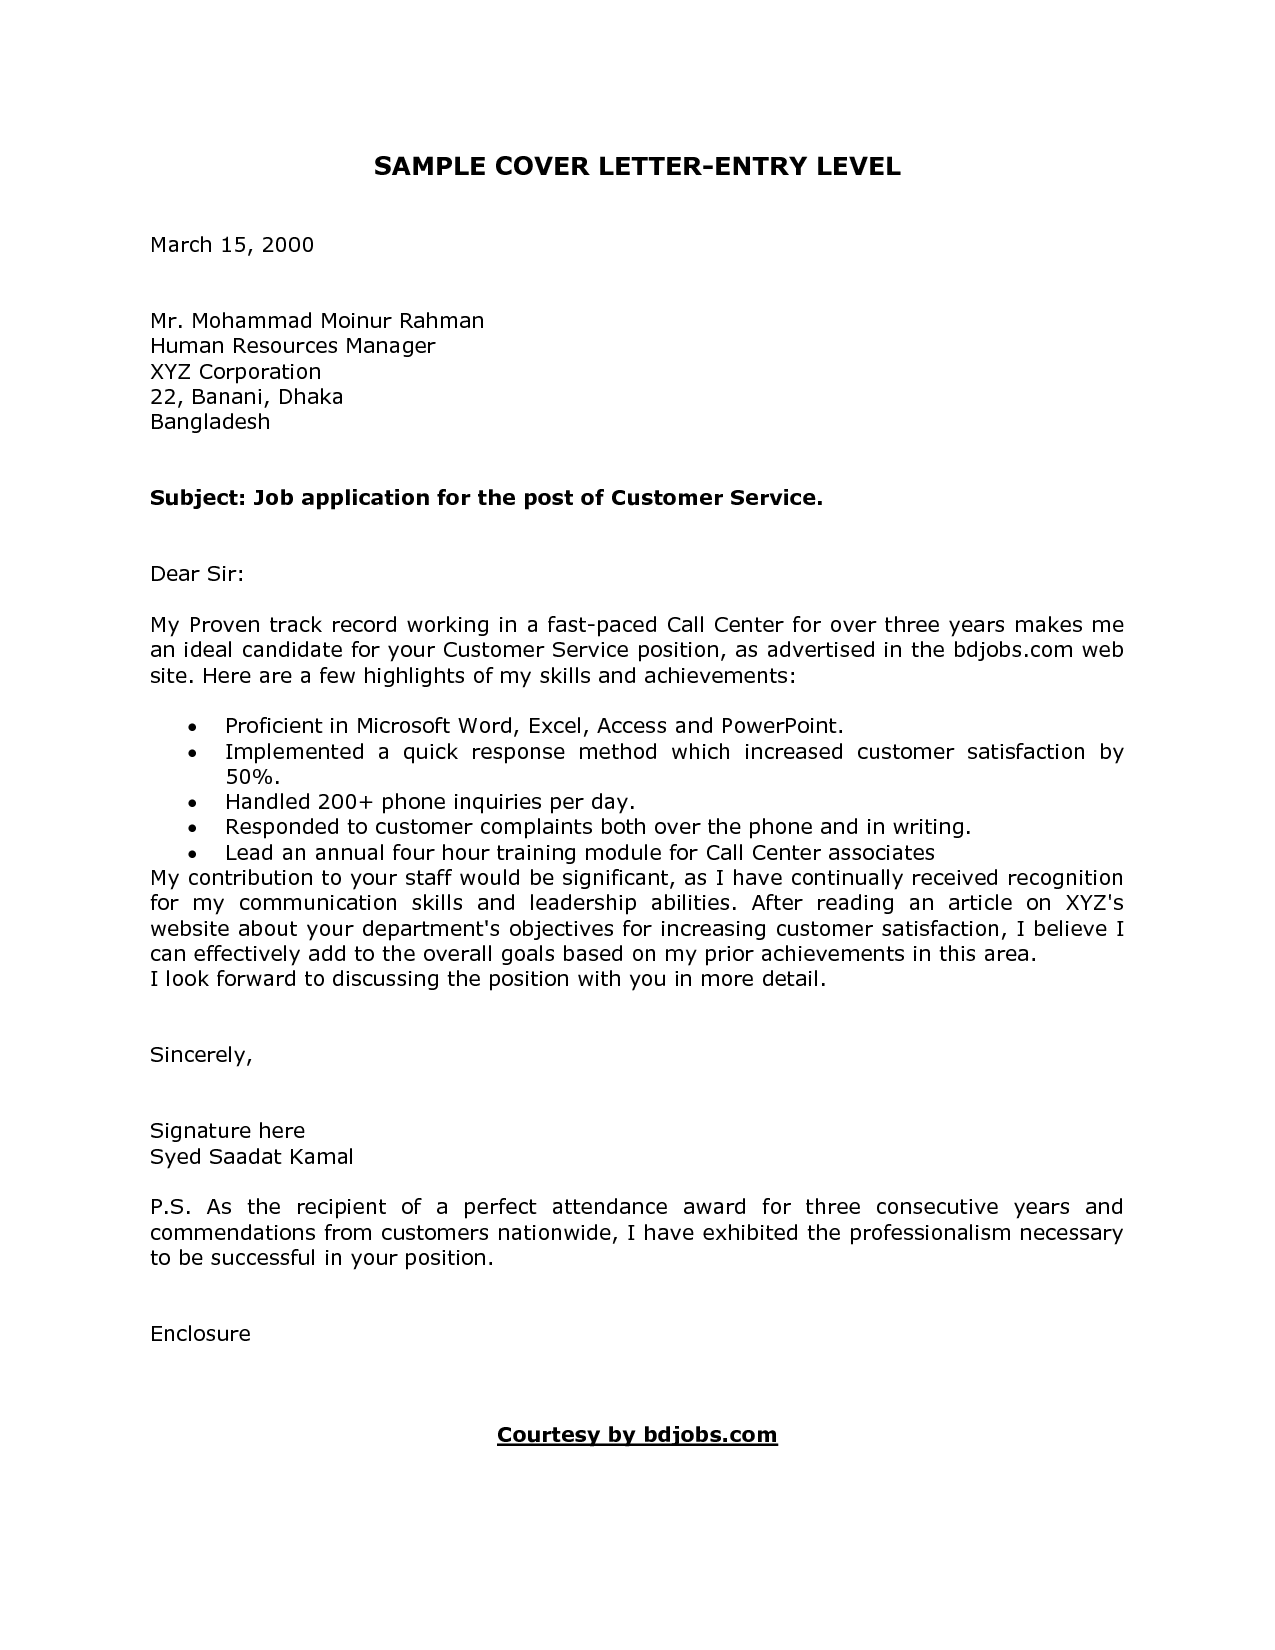 how to write an amazing cover letter cover letters pinterest - Examples Of Writing A Cover Letter